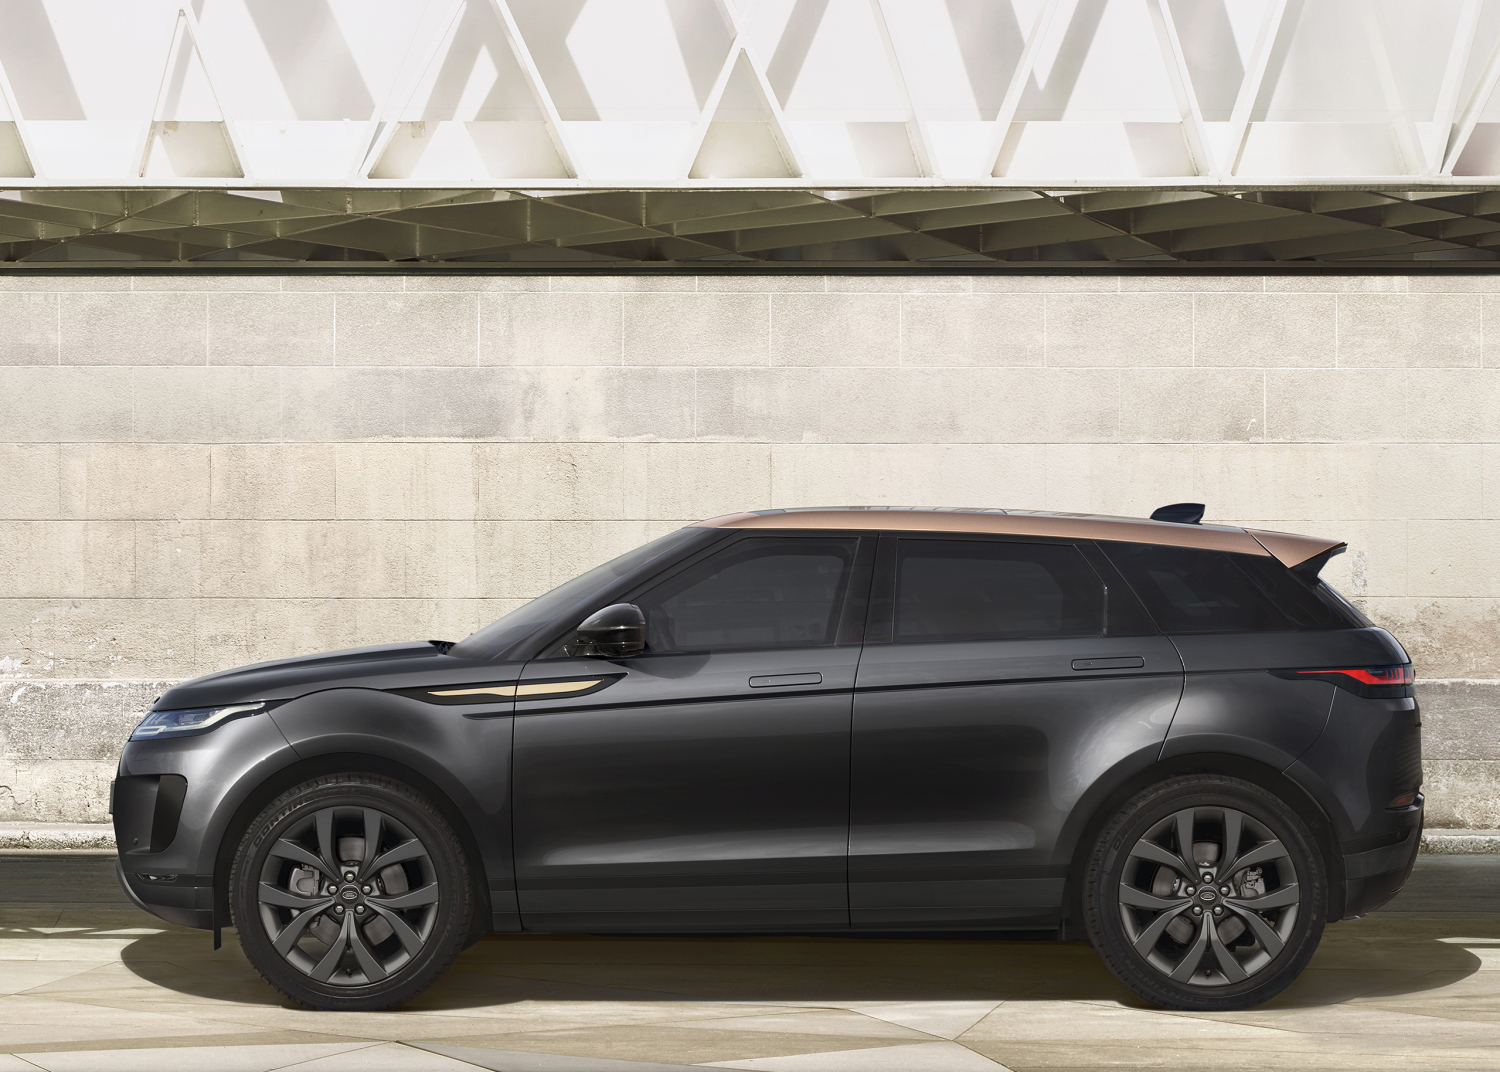 Elegant New Bronze Collection Edition and Sporty P300 Hst Broaden Range Rover Evoque Line-up - Image 4